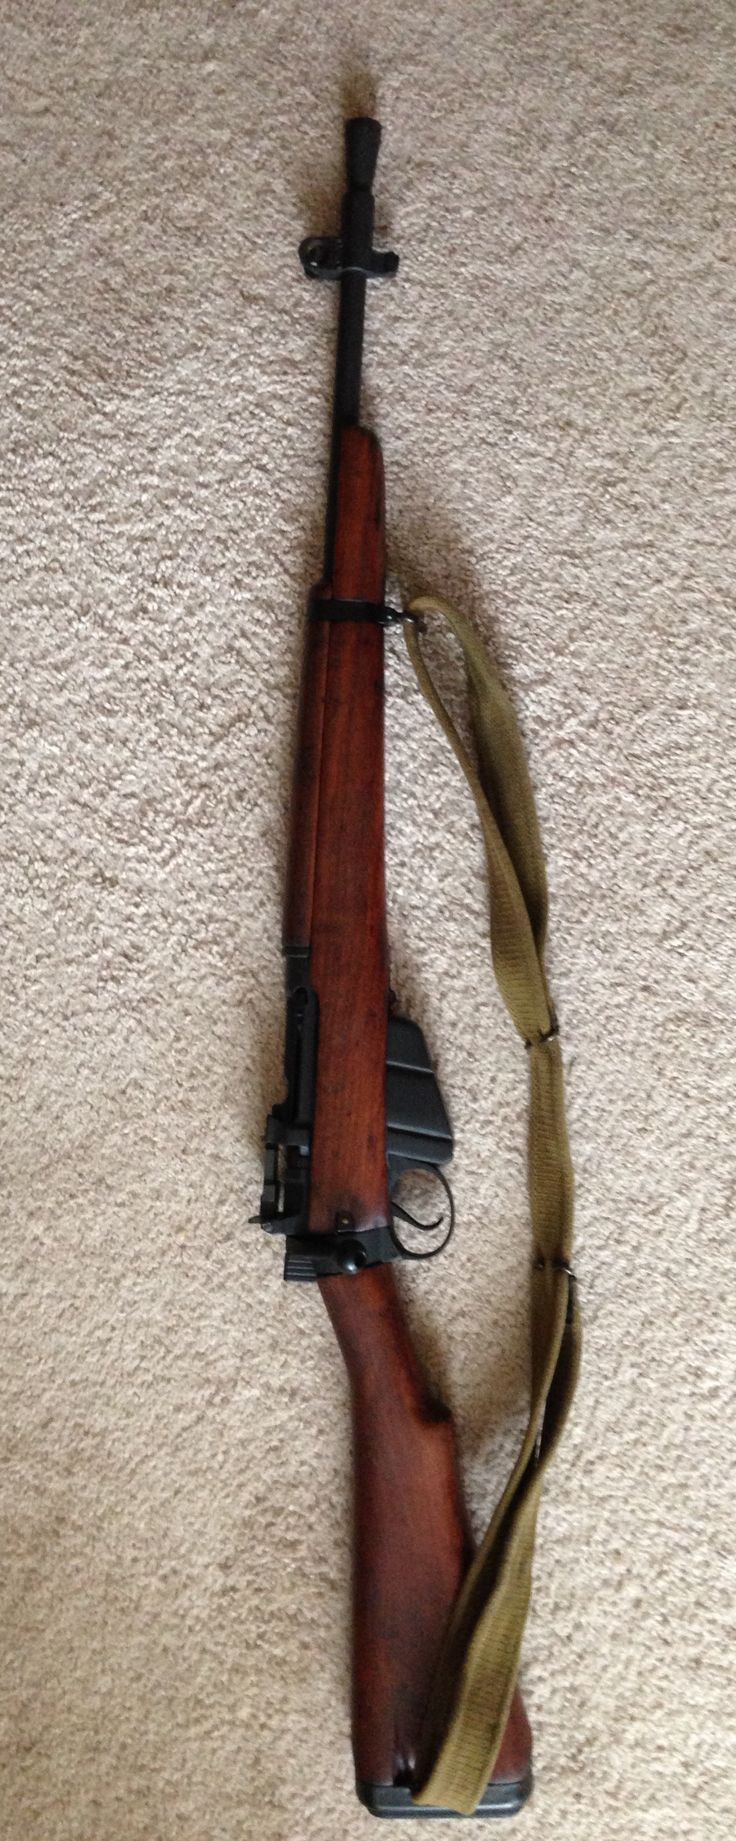 "Lee Enfield No. 5 Mk 1 ""Jungle Carbine"" .303 British"